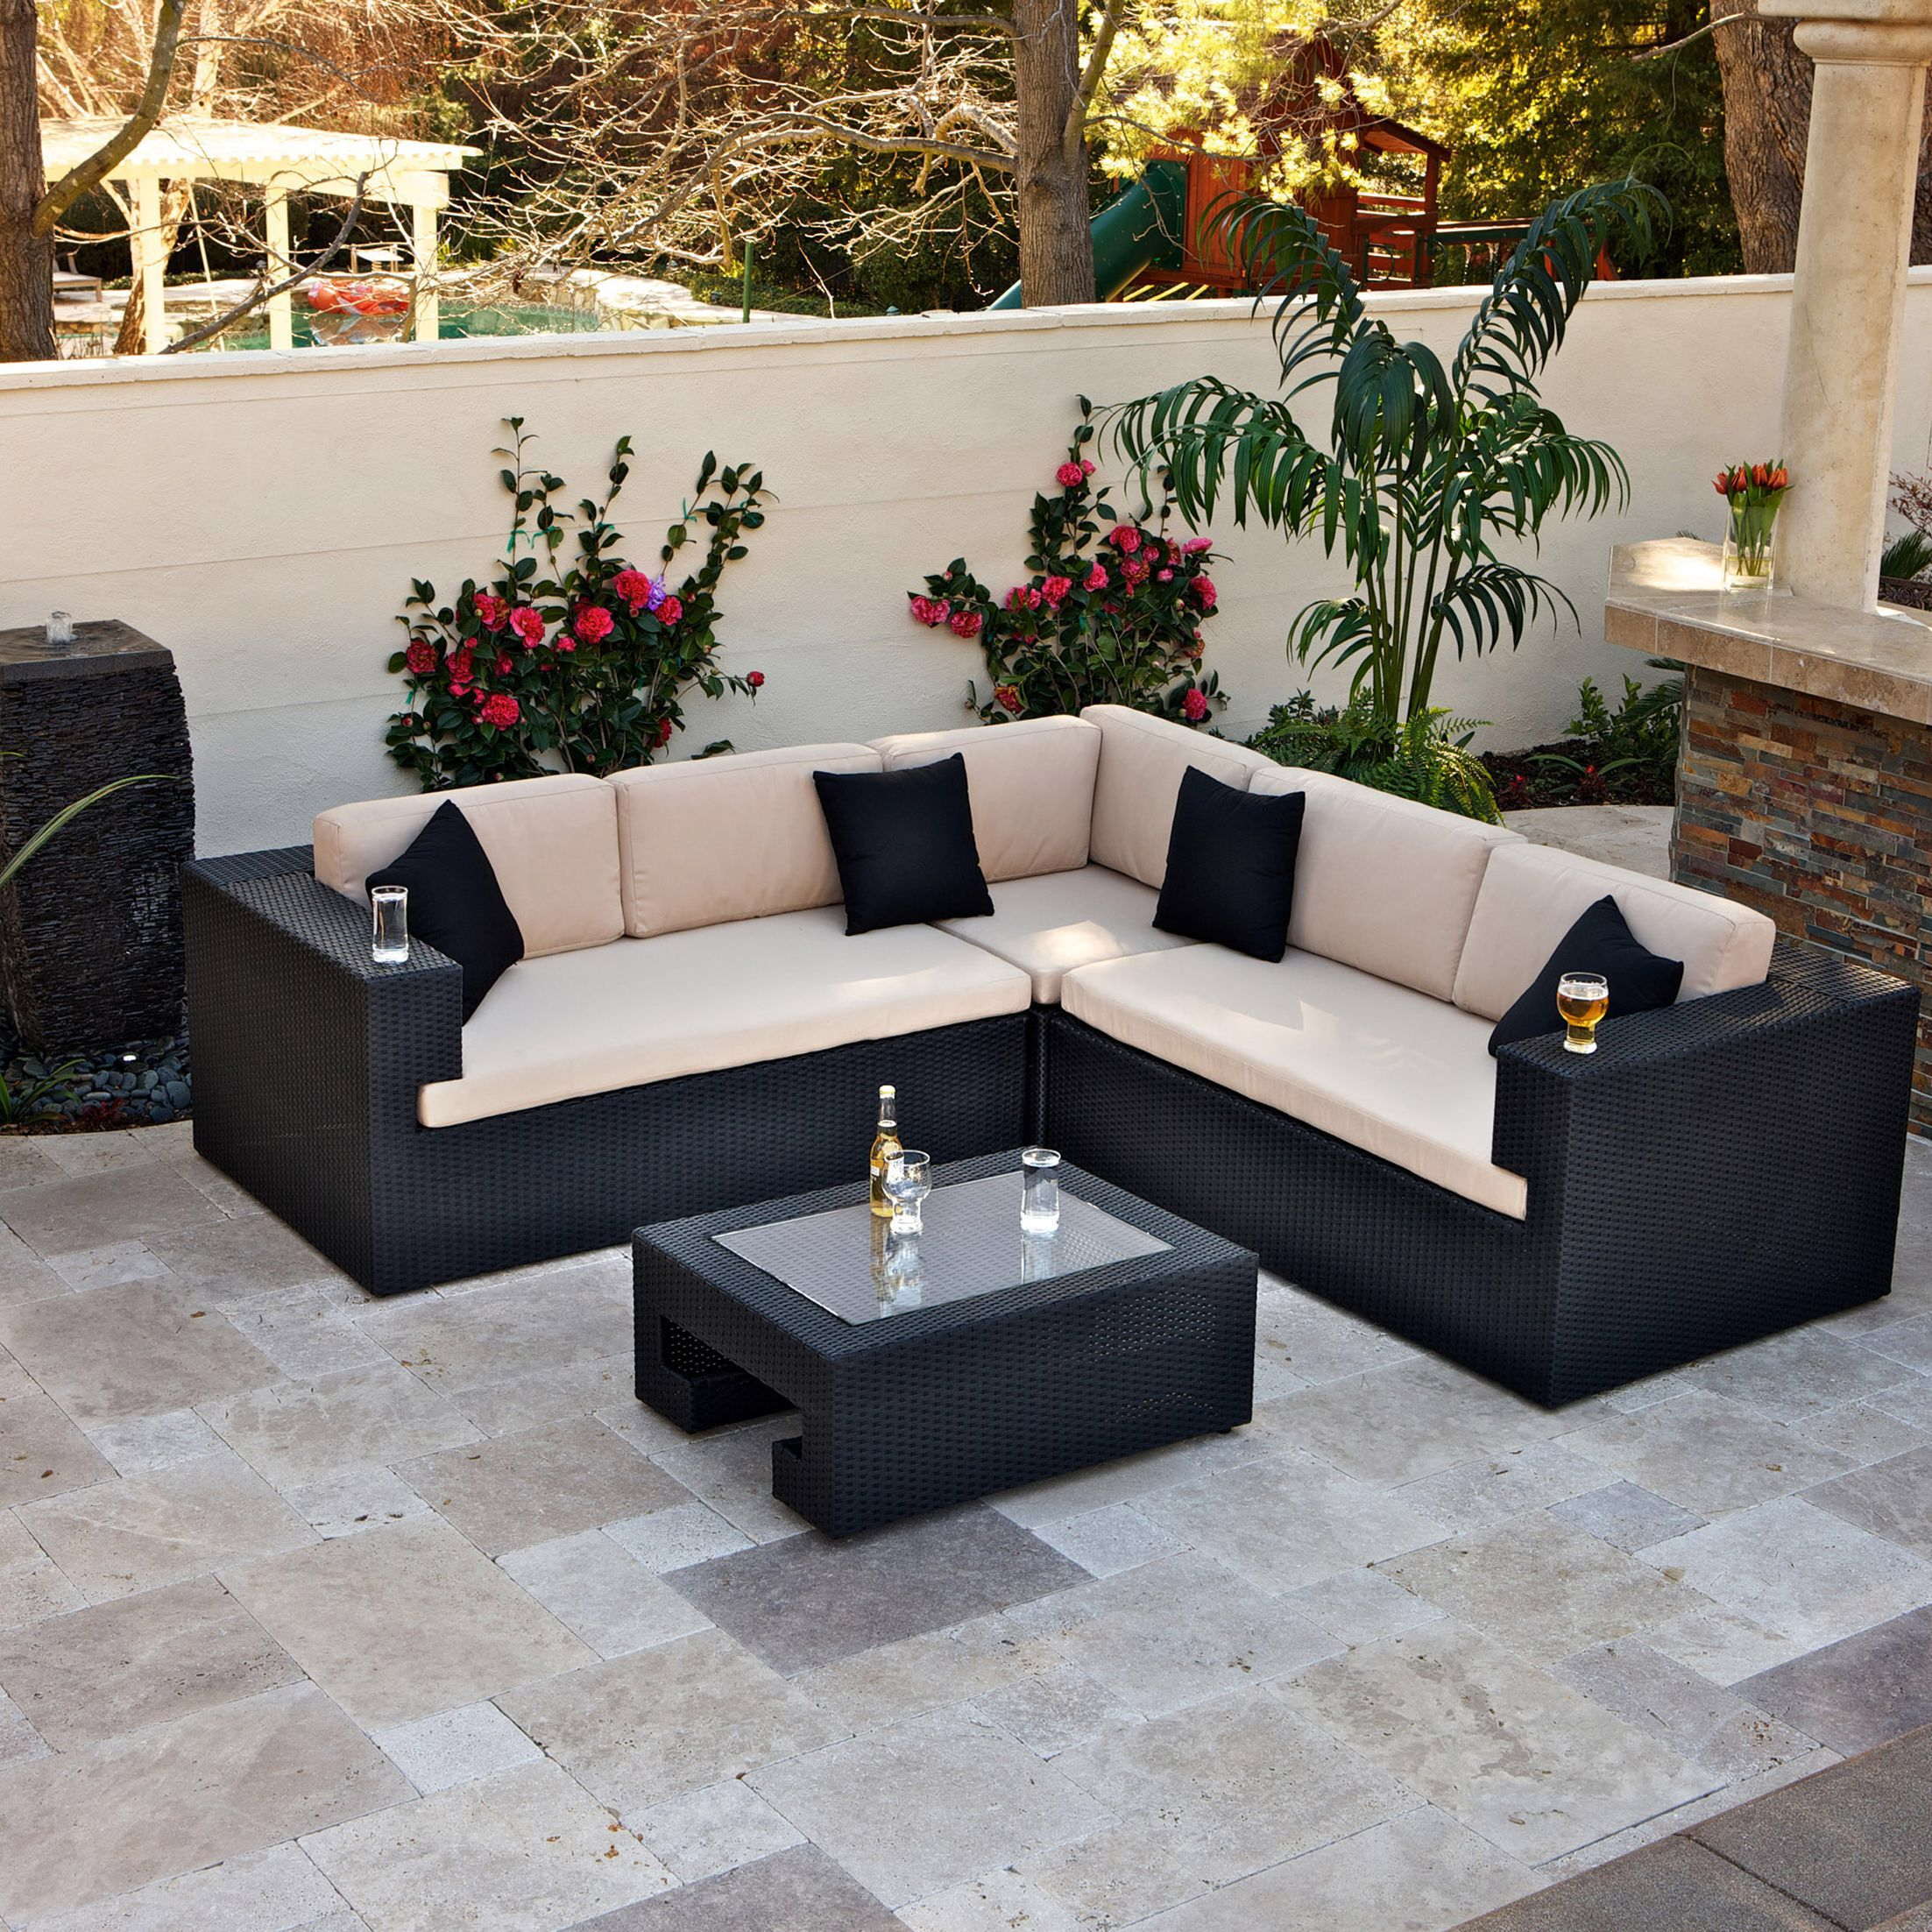 Brooklyn 4 Piece Seating Group In Black With Cushions With Images